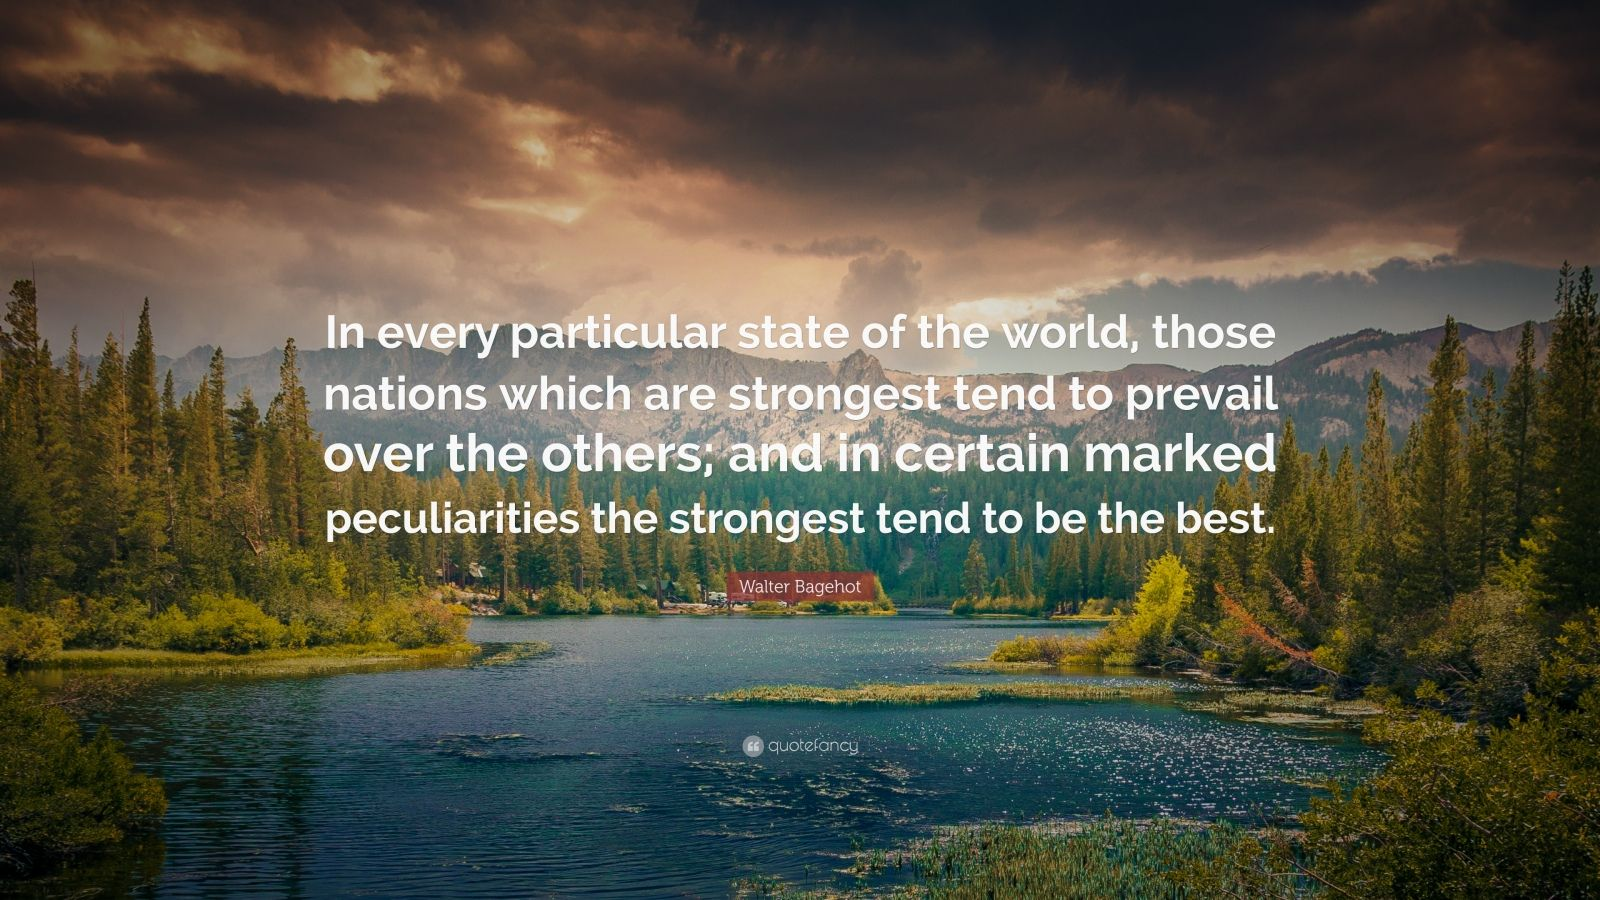 """Walter Bagehot Quote: """"In every particular state of the world, those nations which are strongest tend to prevail over the others; and in certain marked peculiarities the strongest tend to be the best."""""""